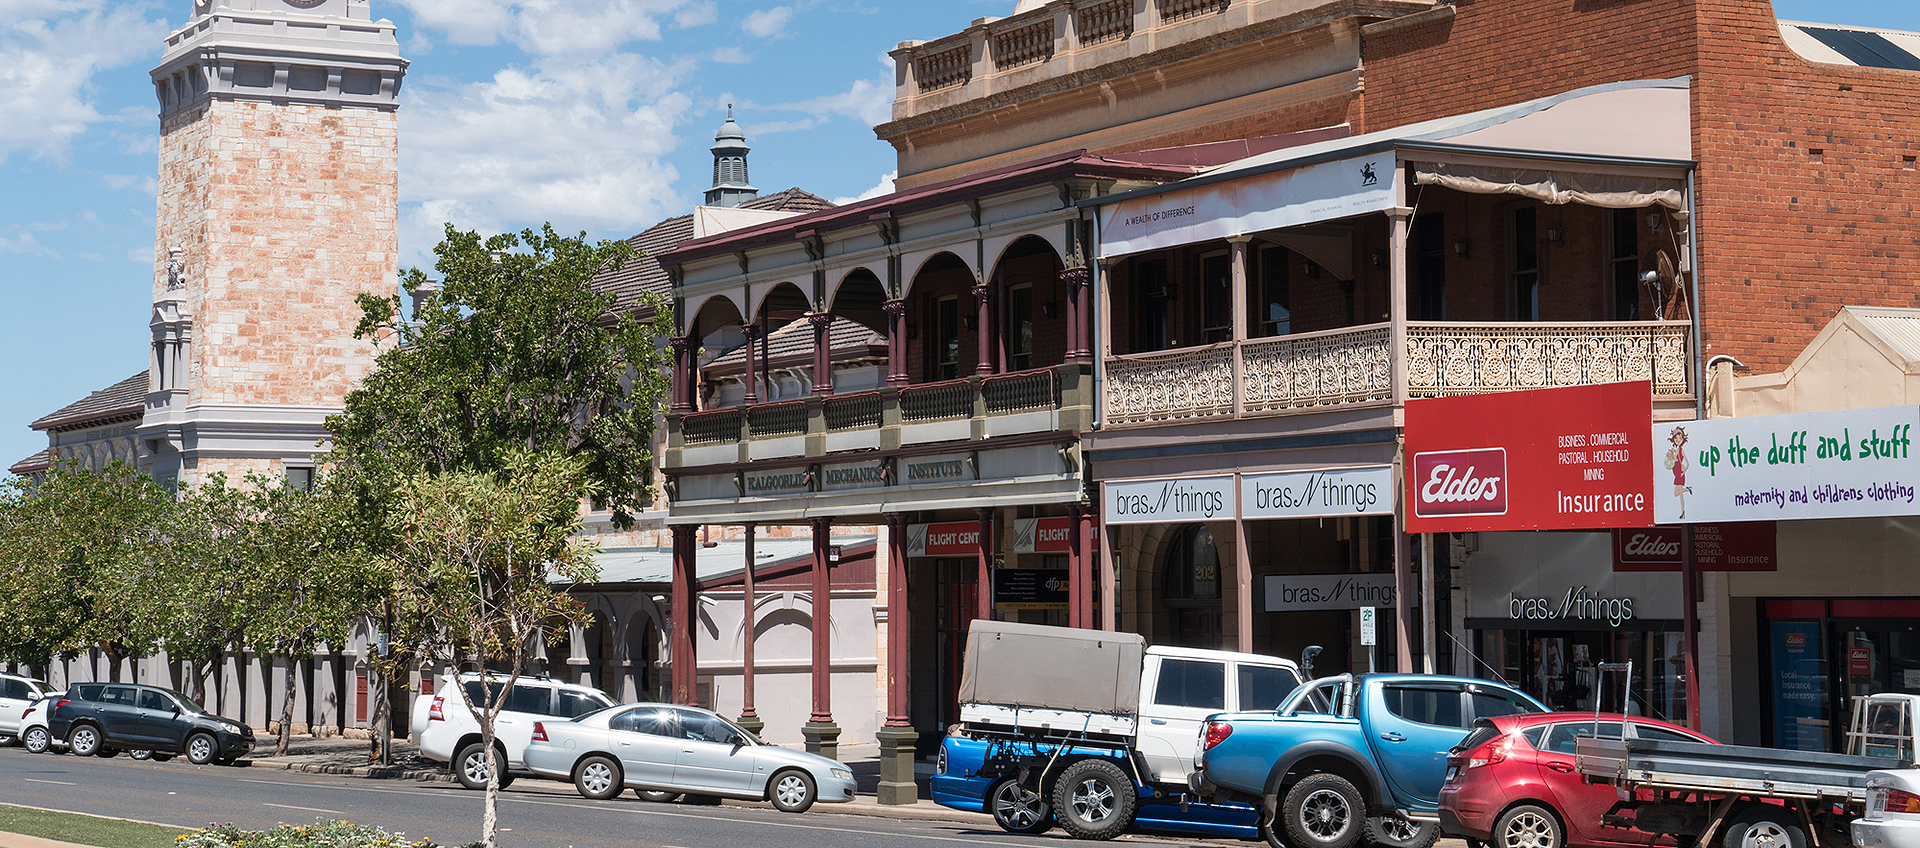 Kalgoorlie-Boulder's main strip is undergoing significant change.